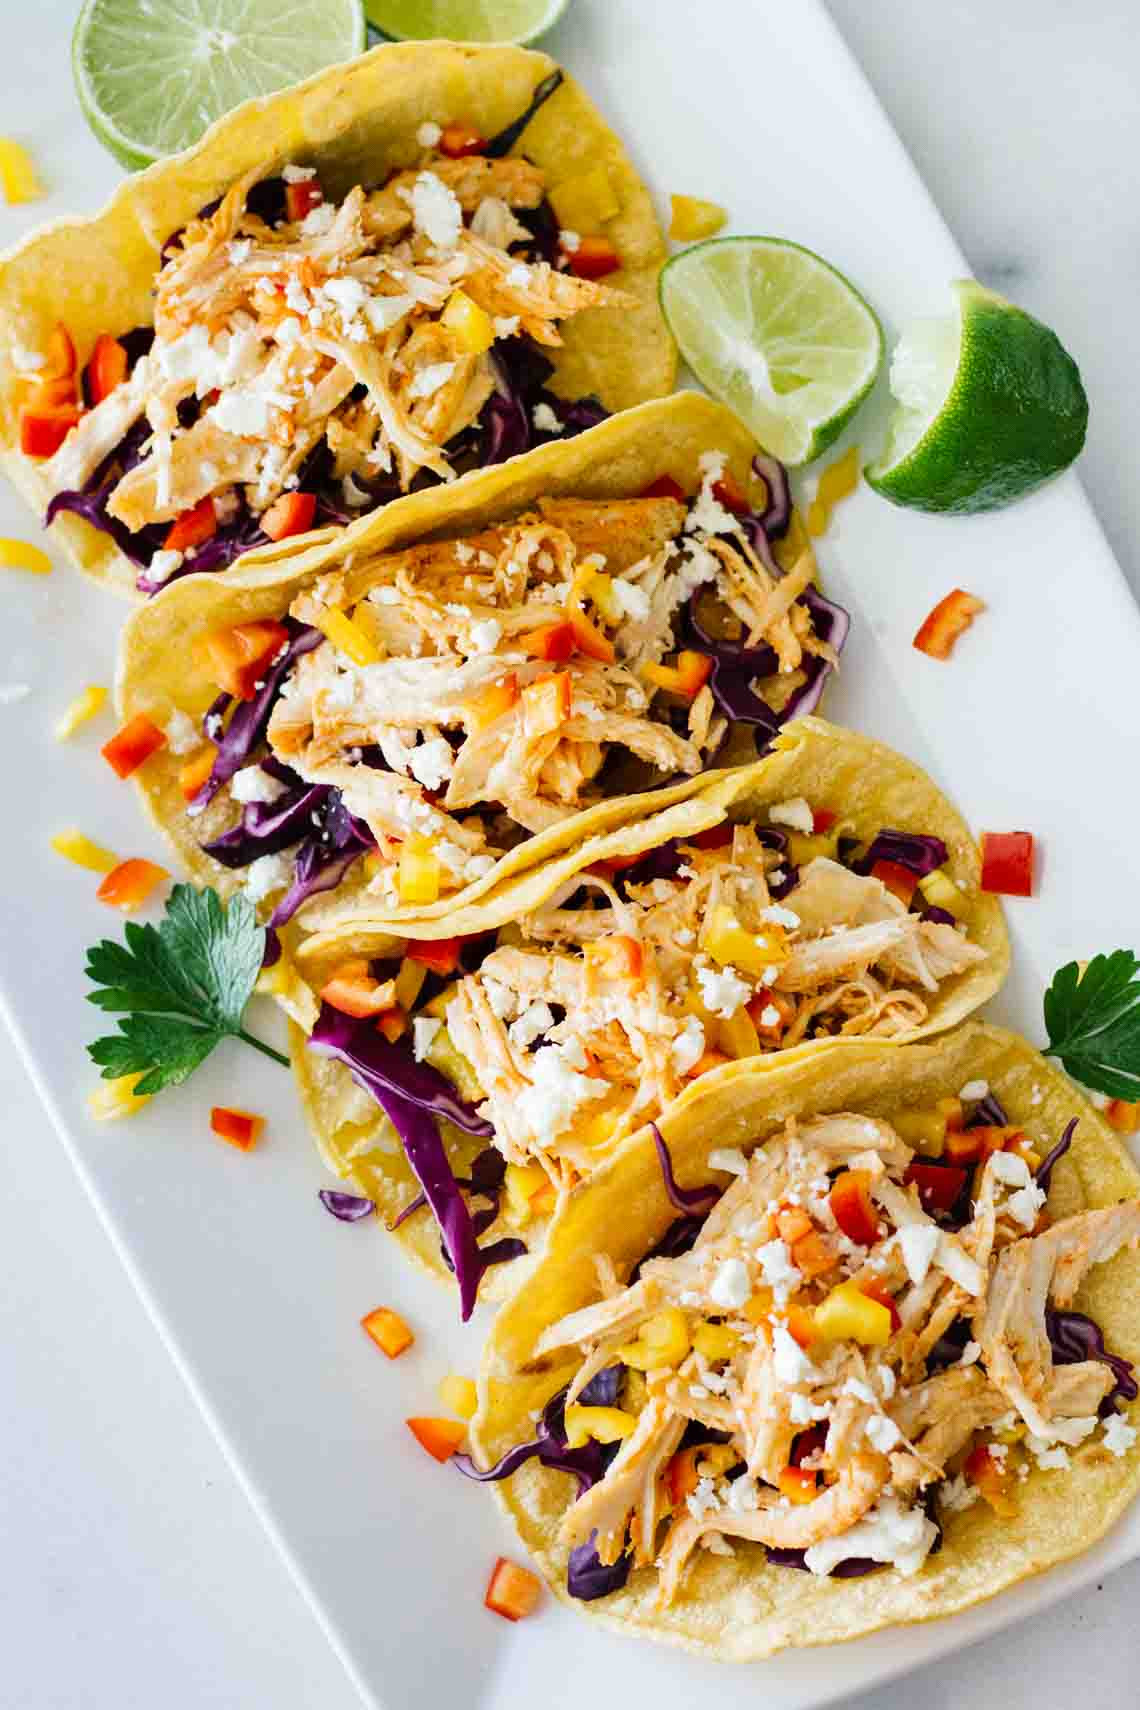 Healthy Weekday Lunches  Healthy Sriracha Shredded Chicken Tacos Jar Lemons